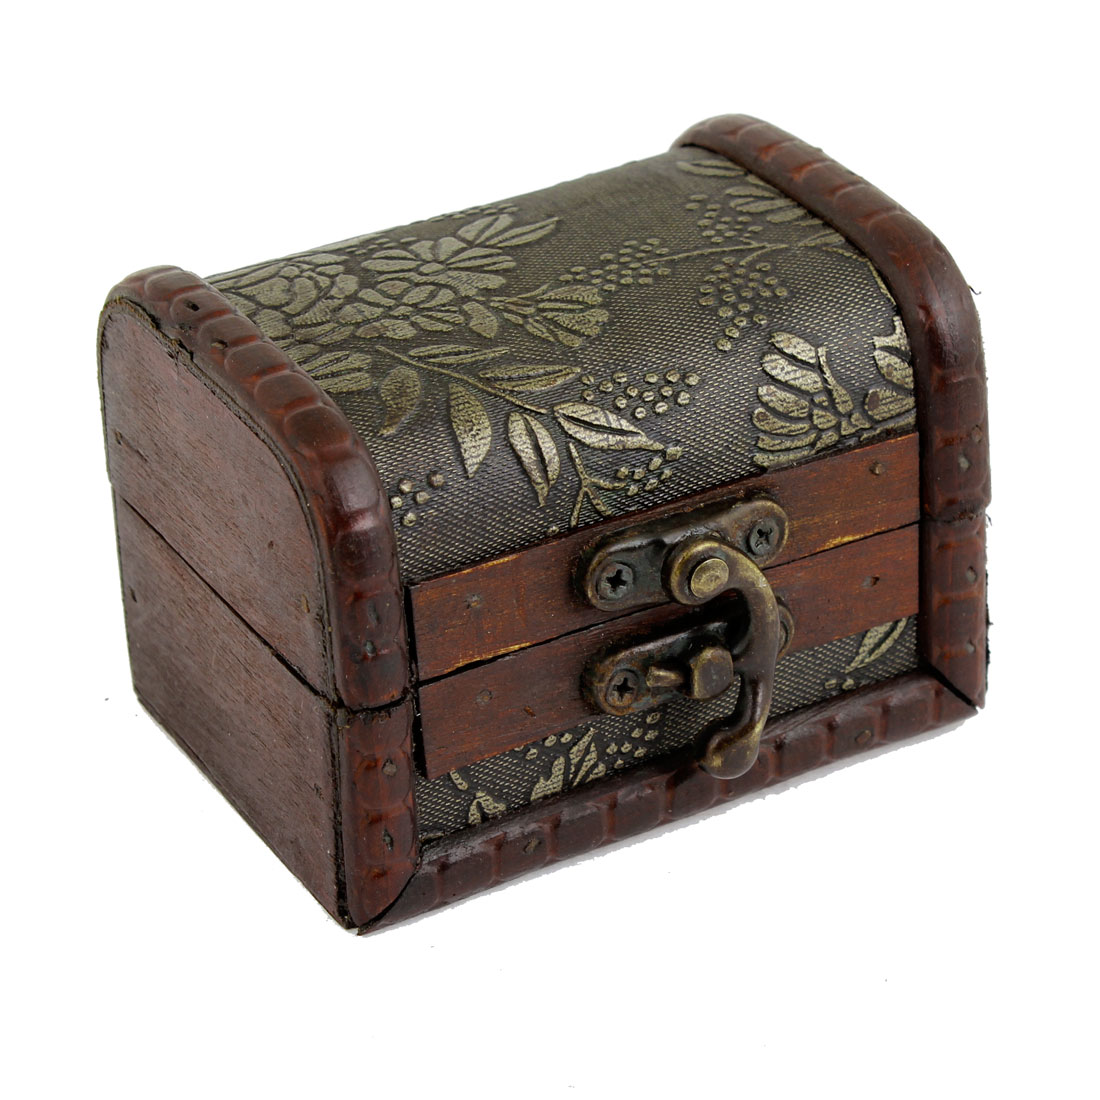 Vintage Style Wooden Metal Buckle Jewelry Storage Case Box